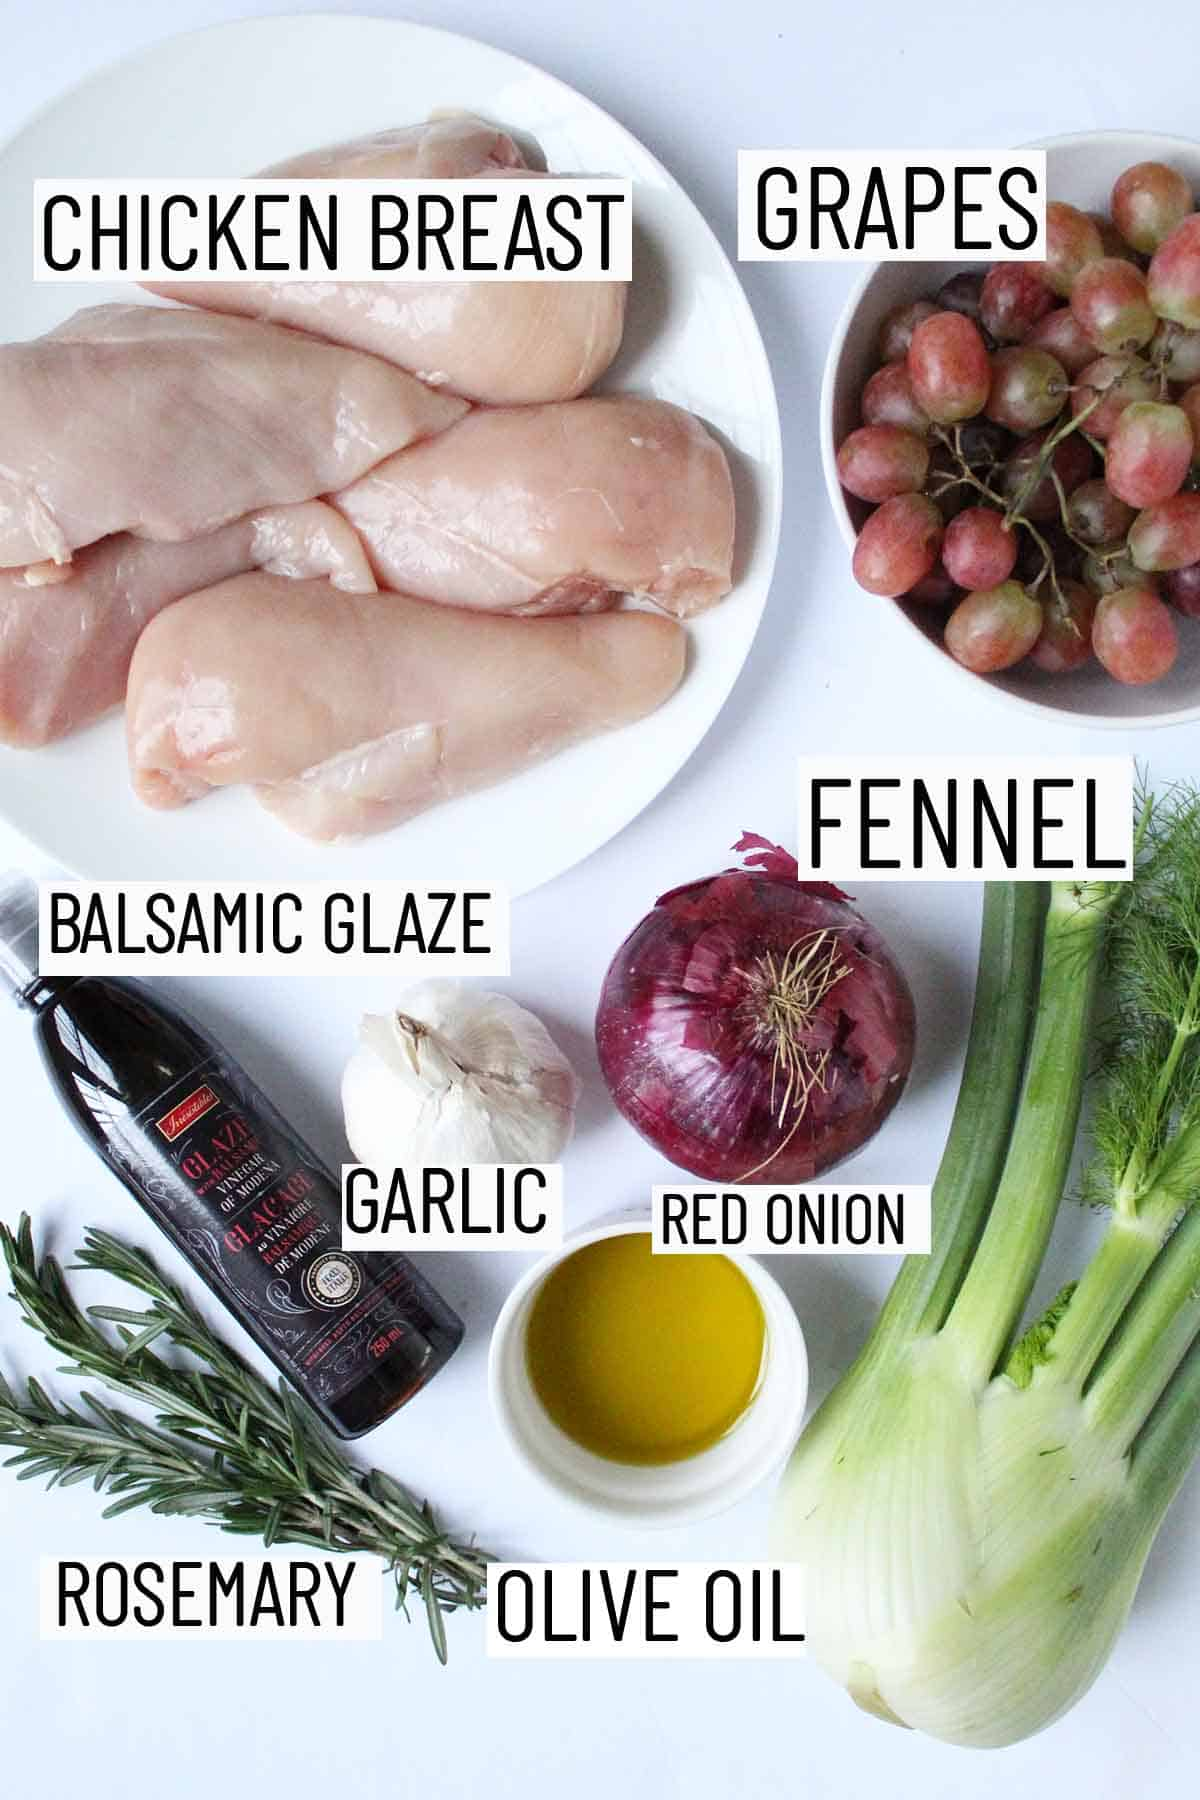 Flay lay image of recipe ingredients including chicken breast, grapes, fennel, balsamic glaze, garlic, red onion, olive oil, and rosemary.